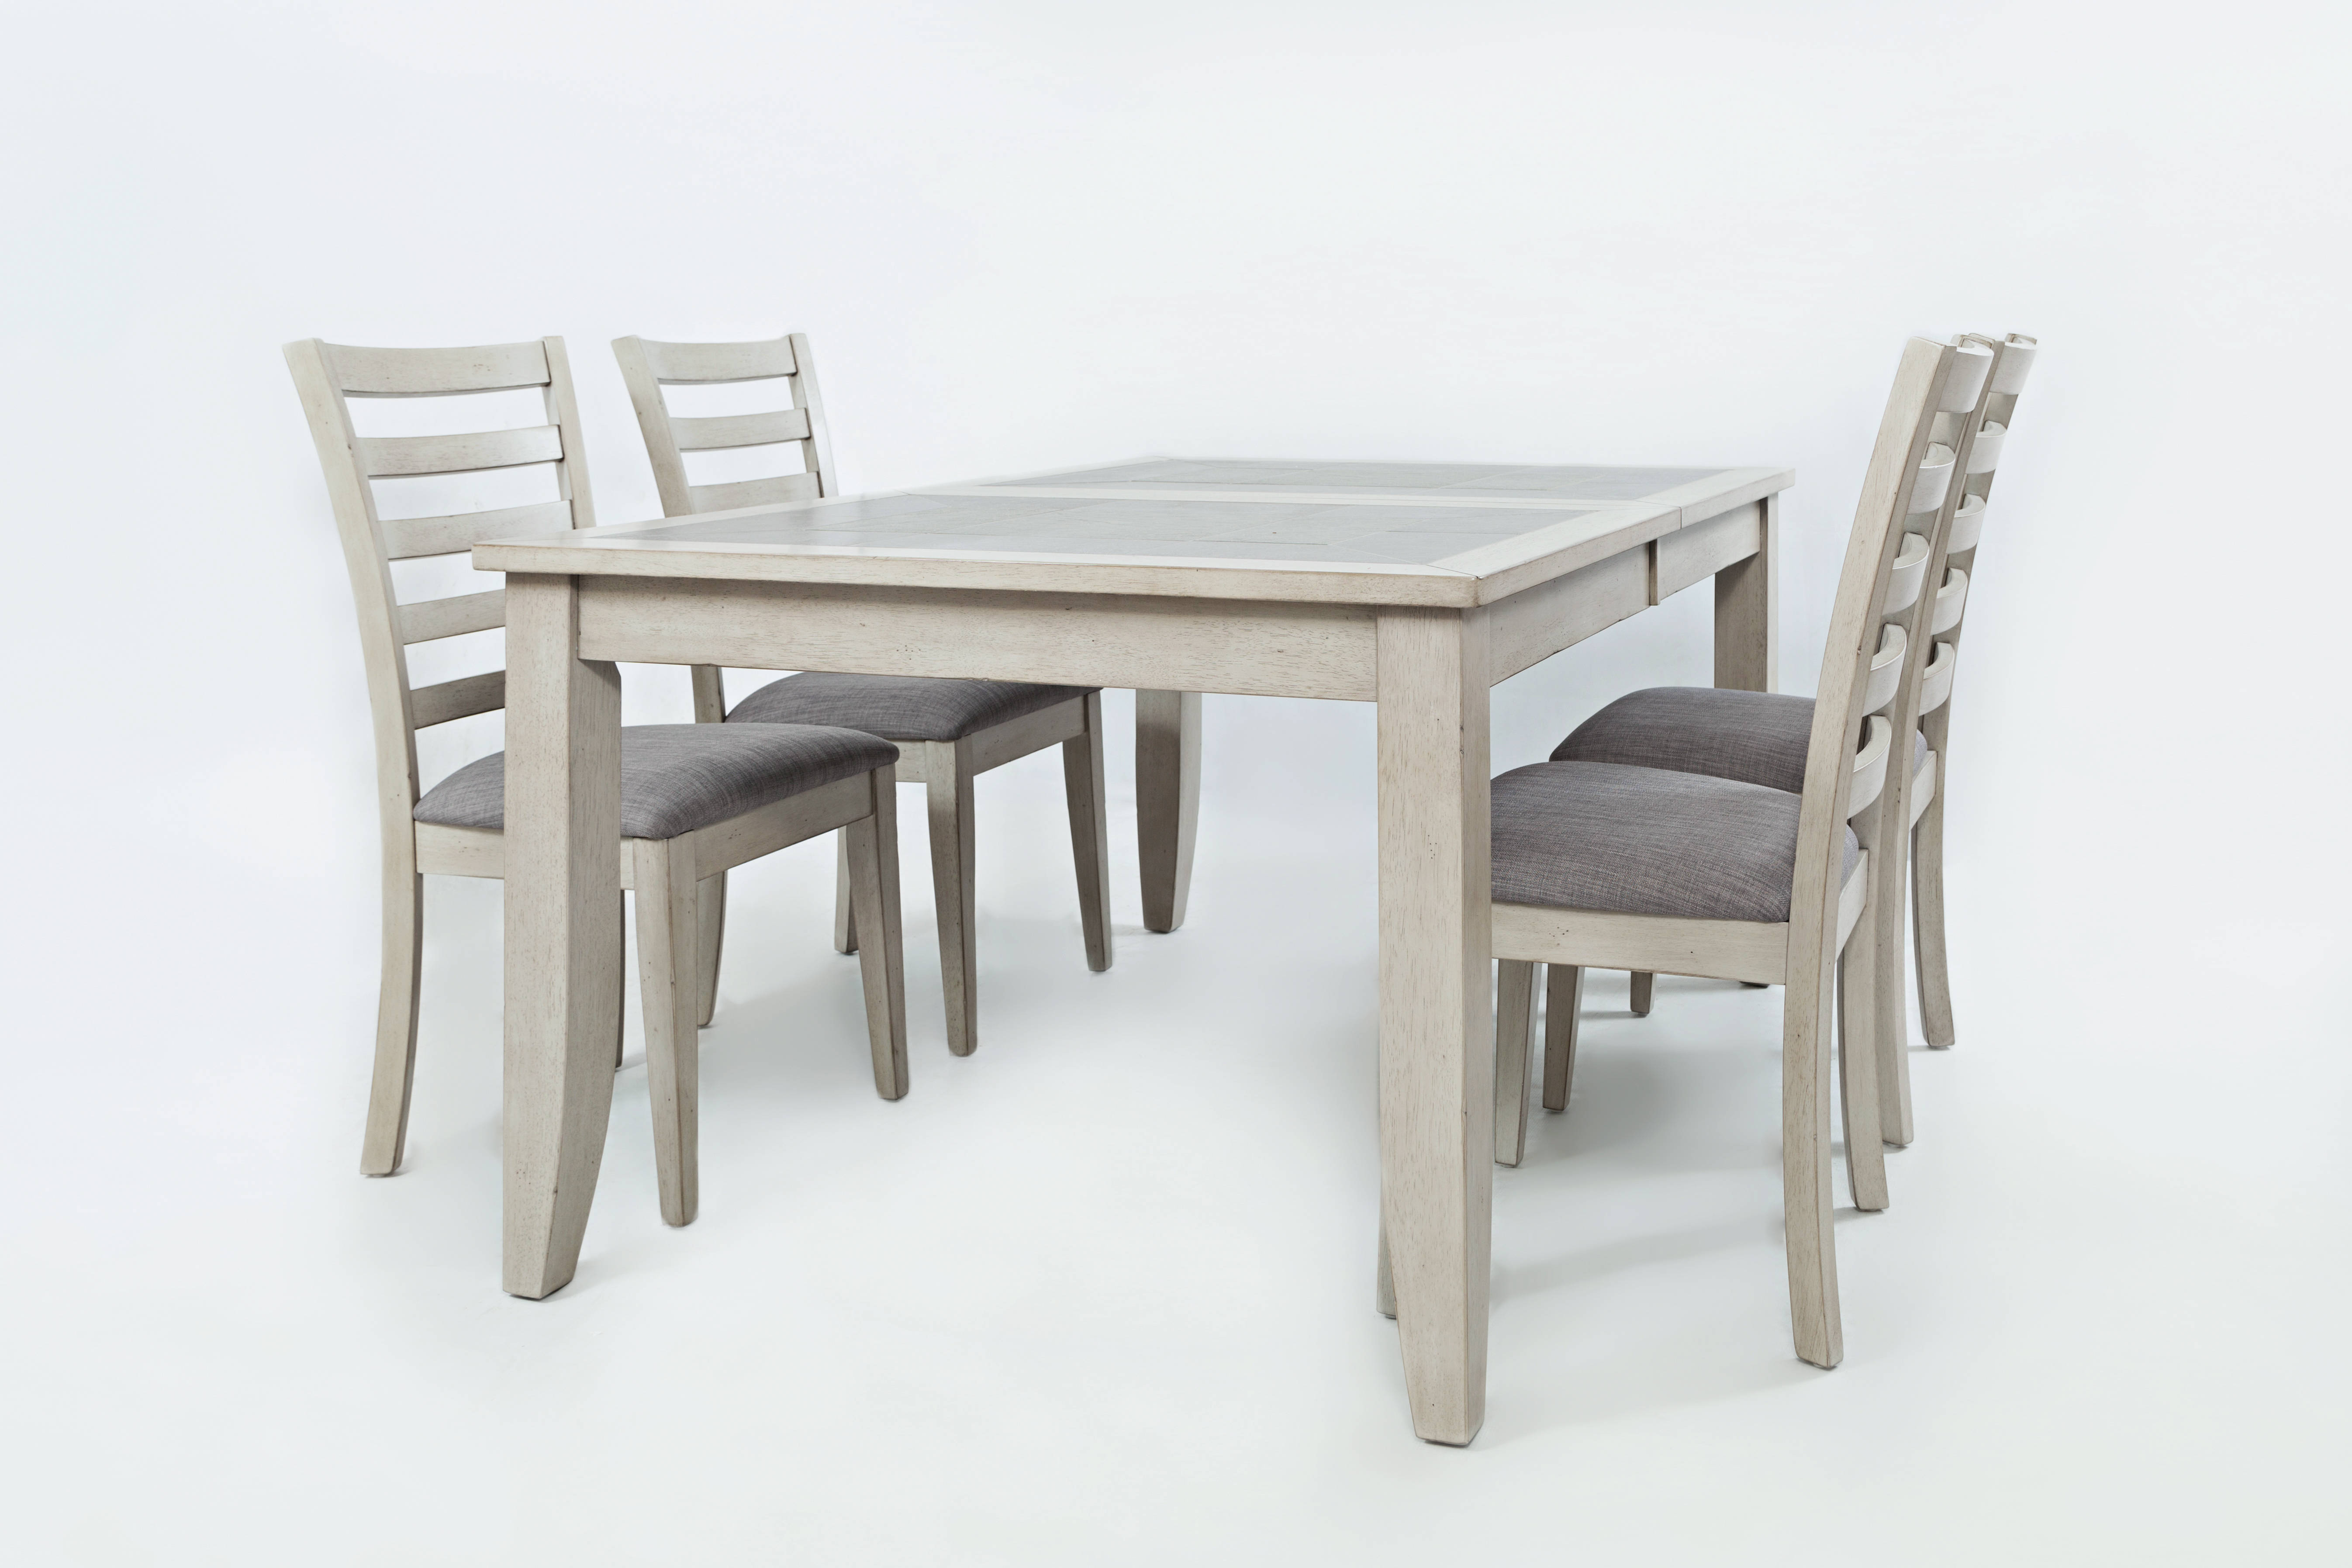 Dining Room Set With Extension Table Click To Enlarge